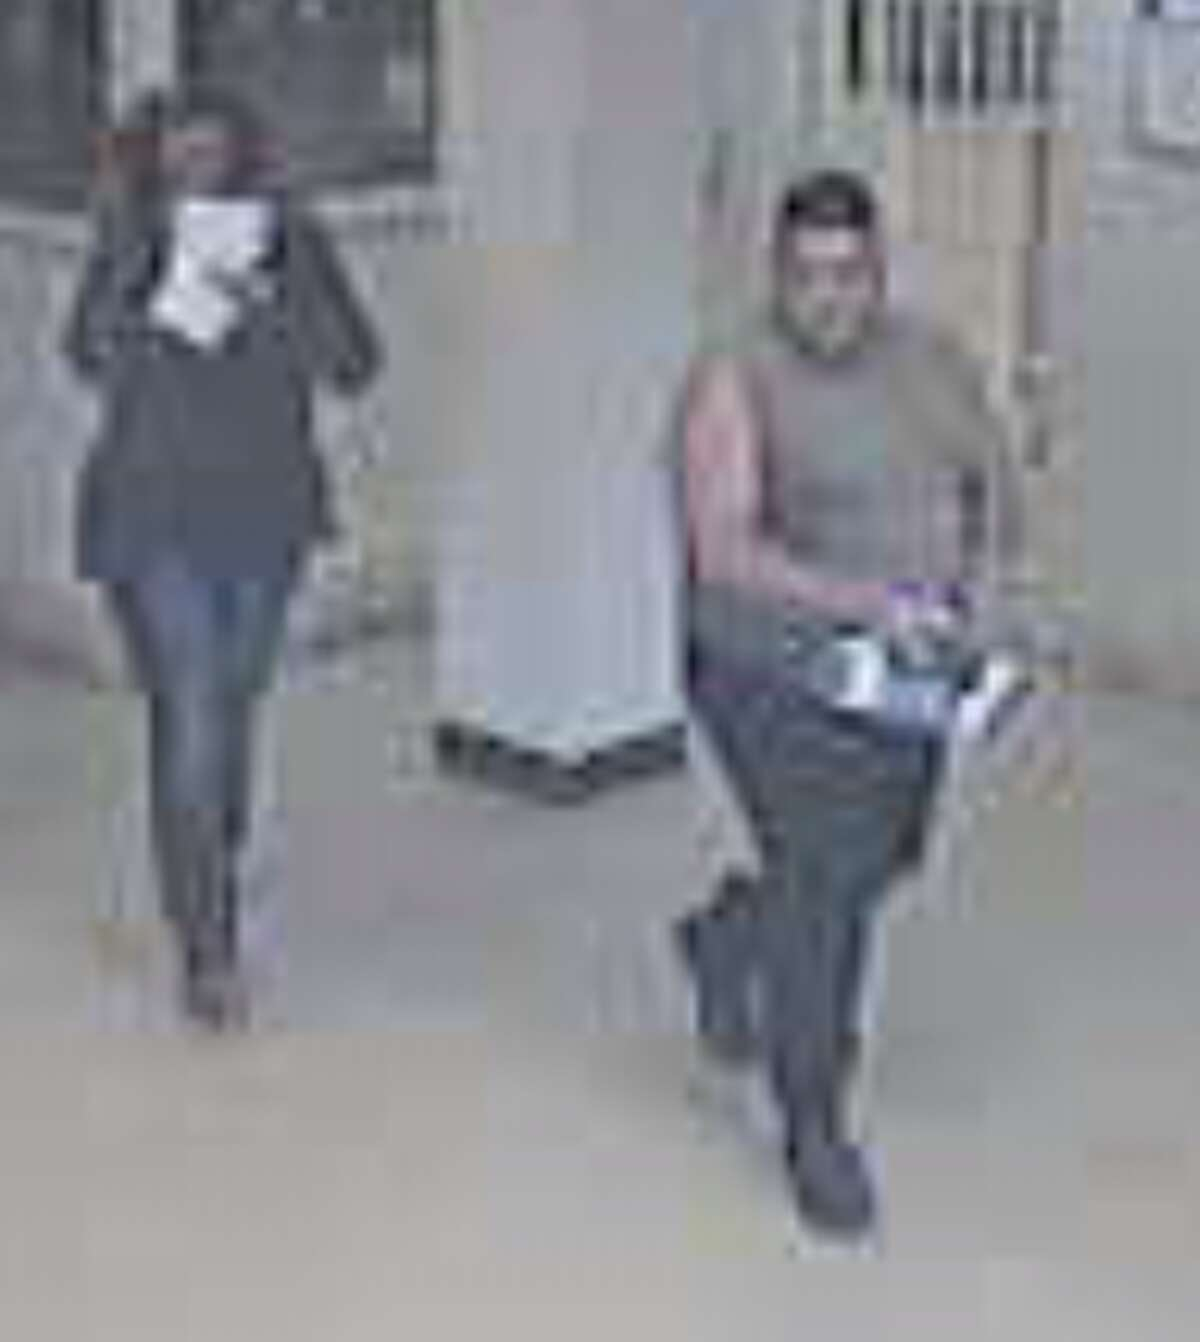 The Comal County Sheriff's Office is searching for a sexual assault suspect accidentally released from jail.